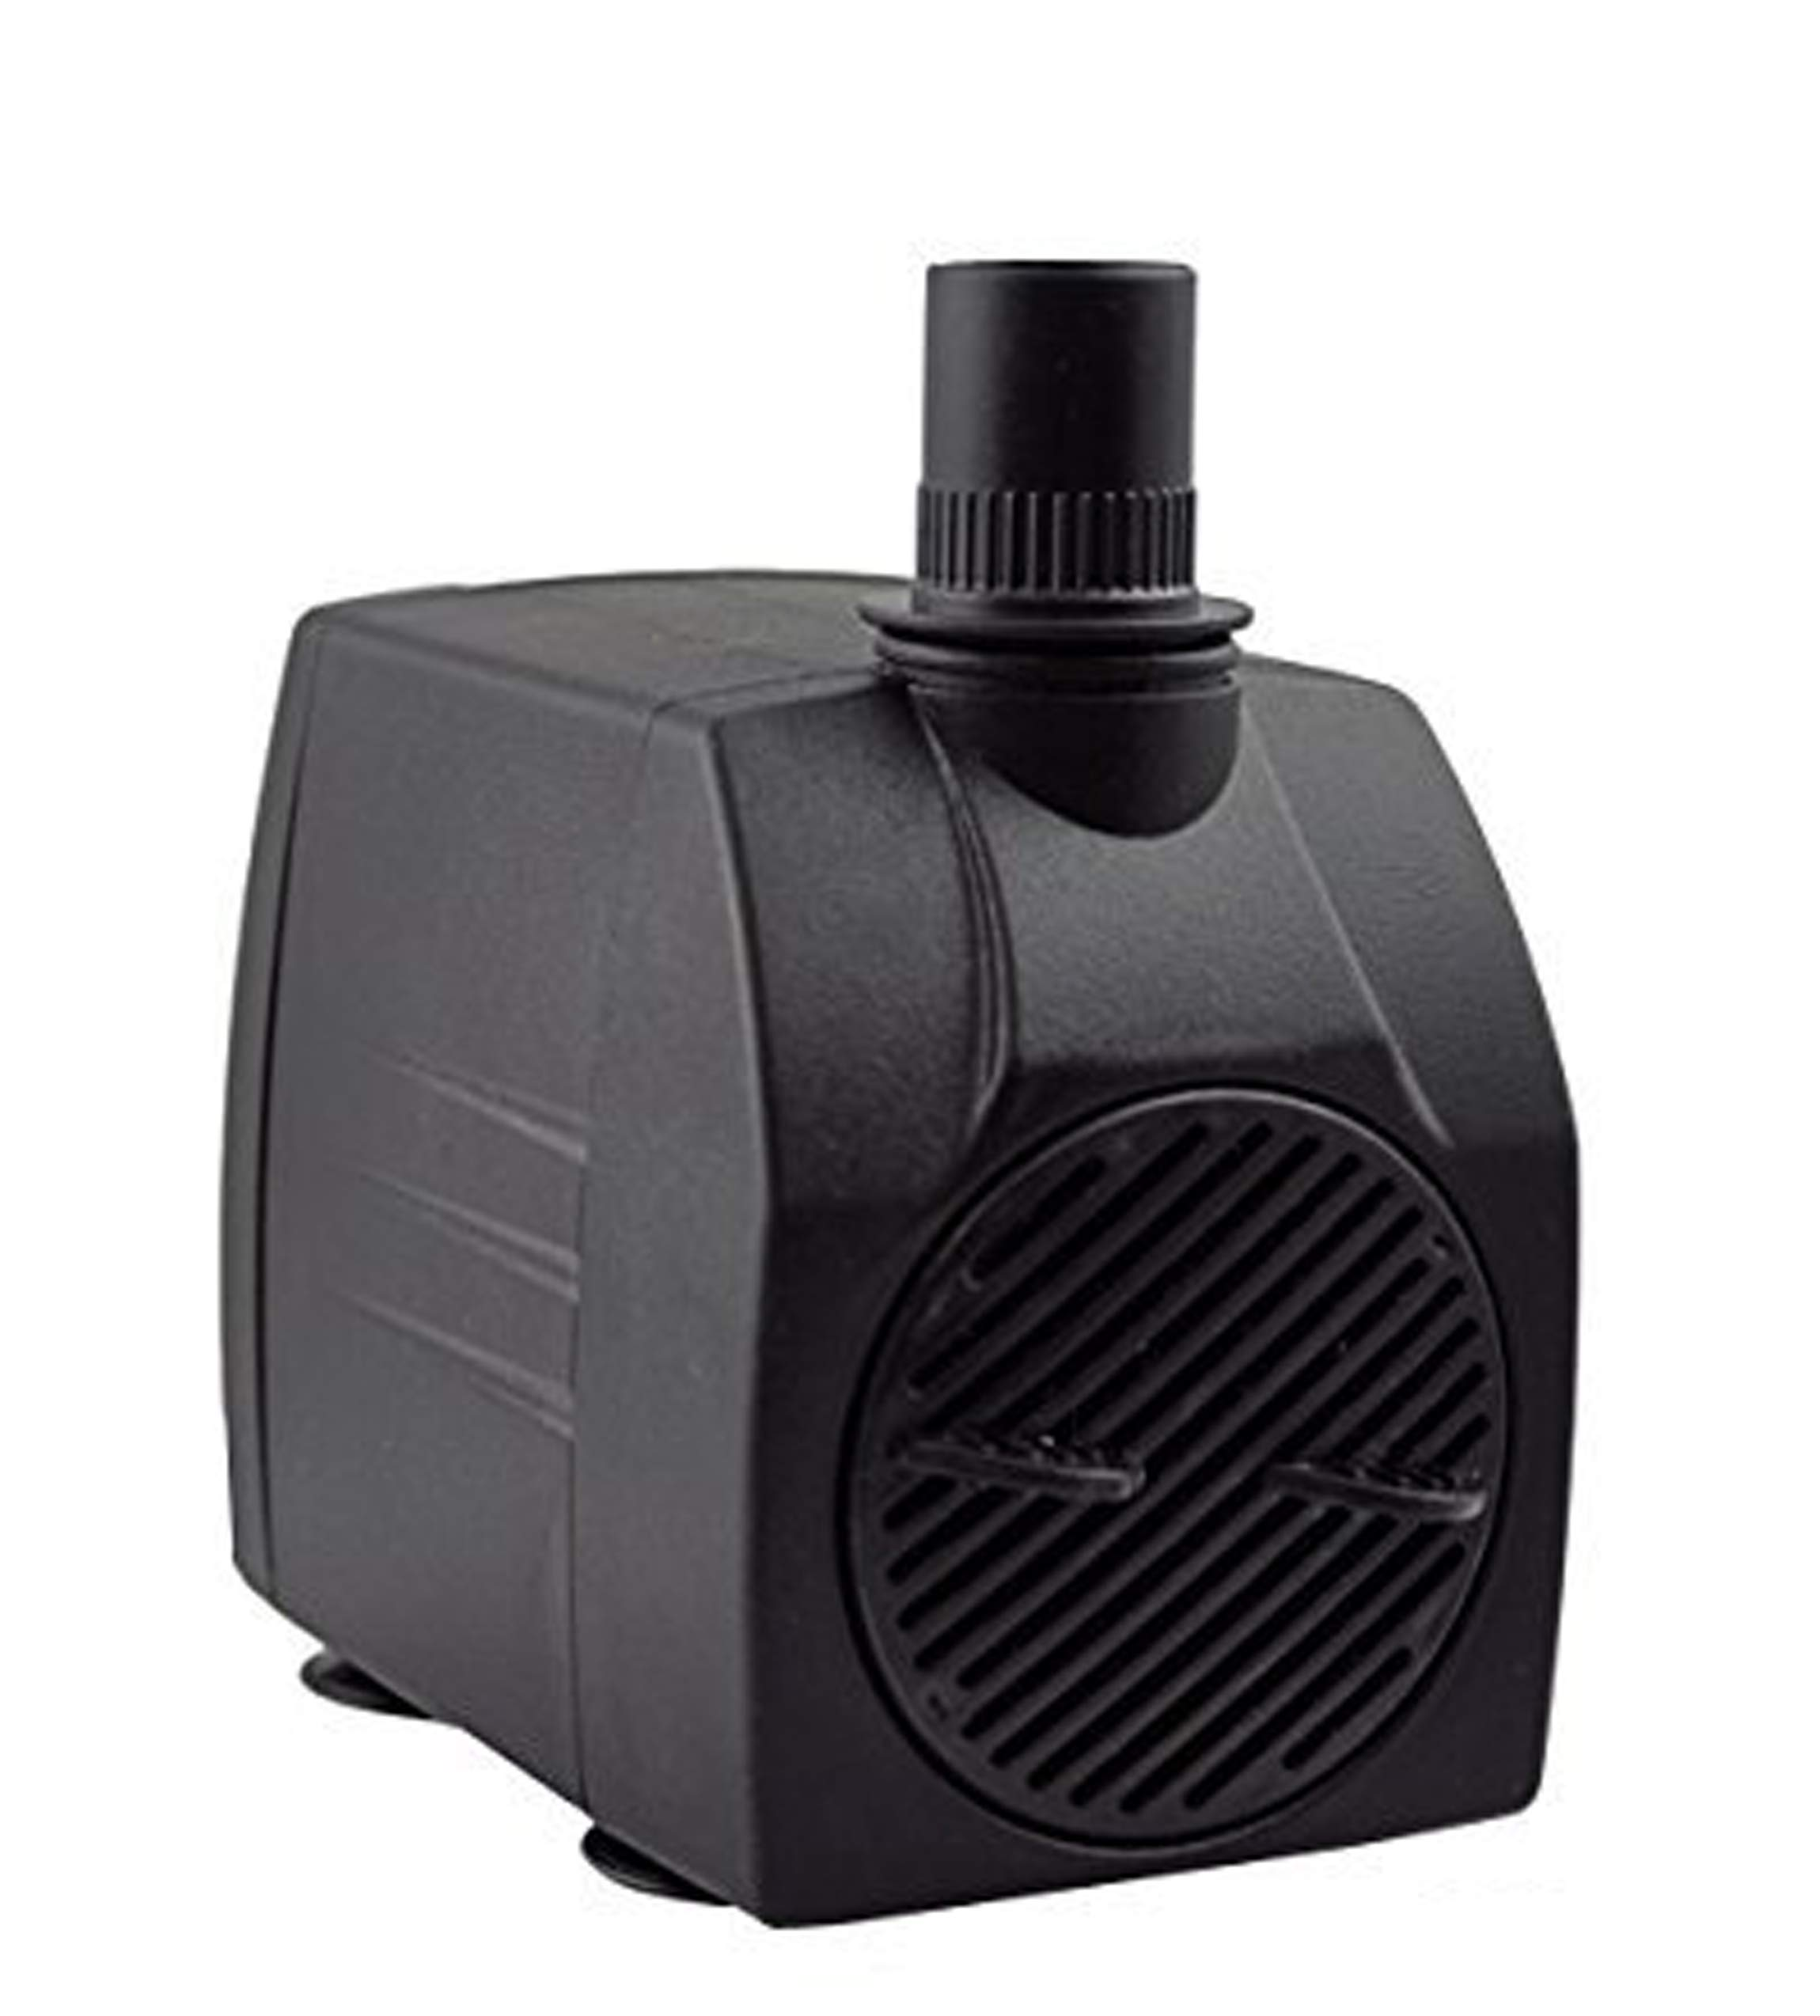 Instapark 400GPH UL Safety Certified Submersible Pump 25W 110V AC Fountain Water Pump with 5.9ft Power Cord, 3 Nozzles for Aquarium, Fish Tank, Pond, Statuary, Hydroponics by Instapark